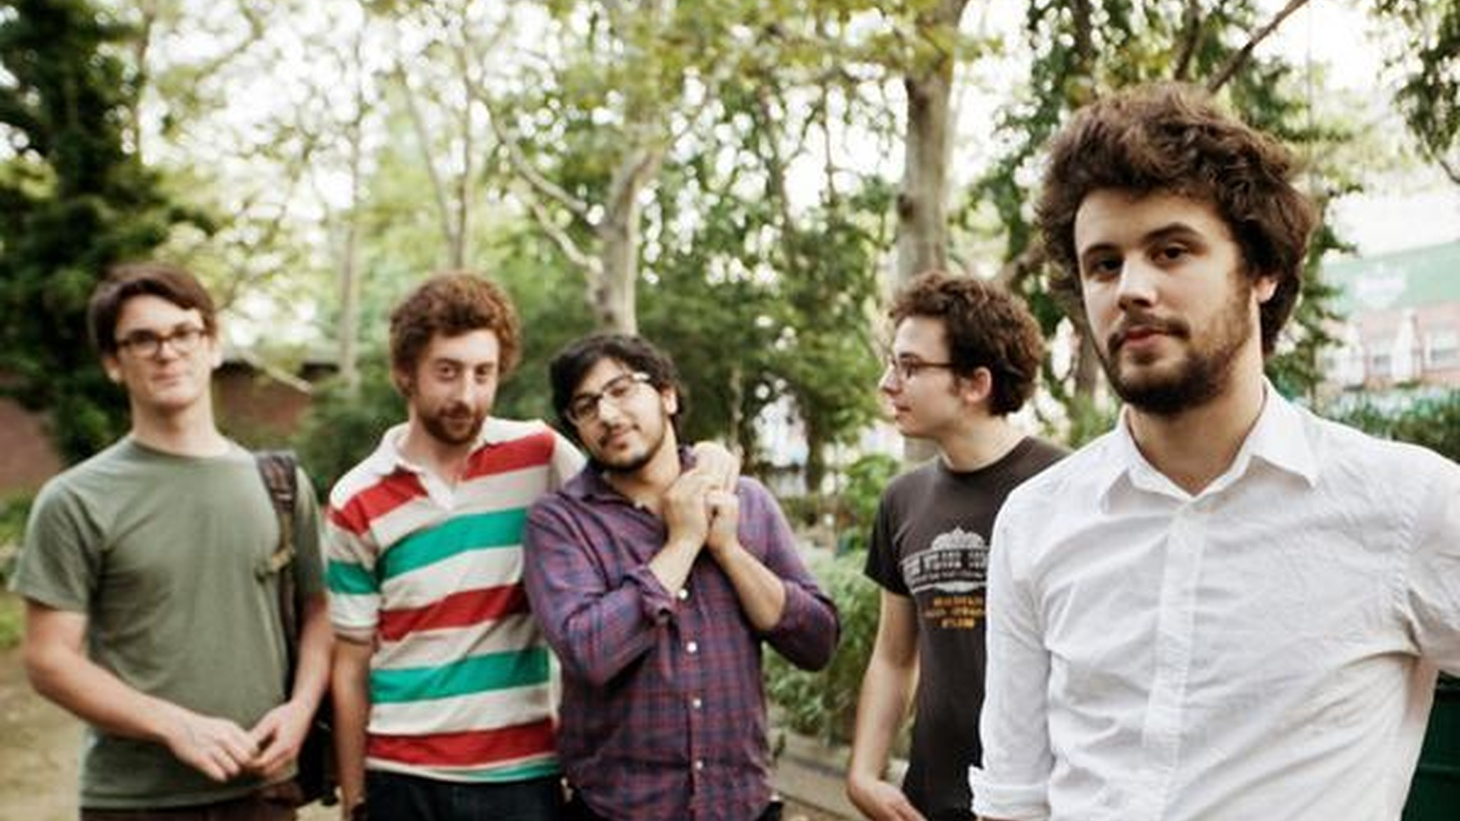 Passion Pit get their electronic groove on Morning Becomes Eclectic at 11:15am.